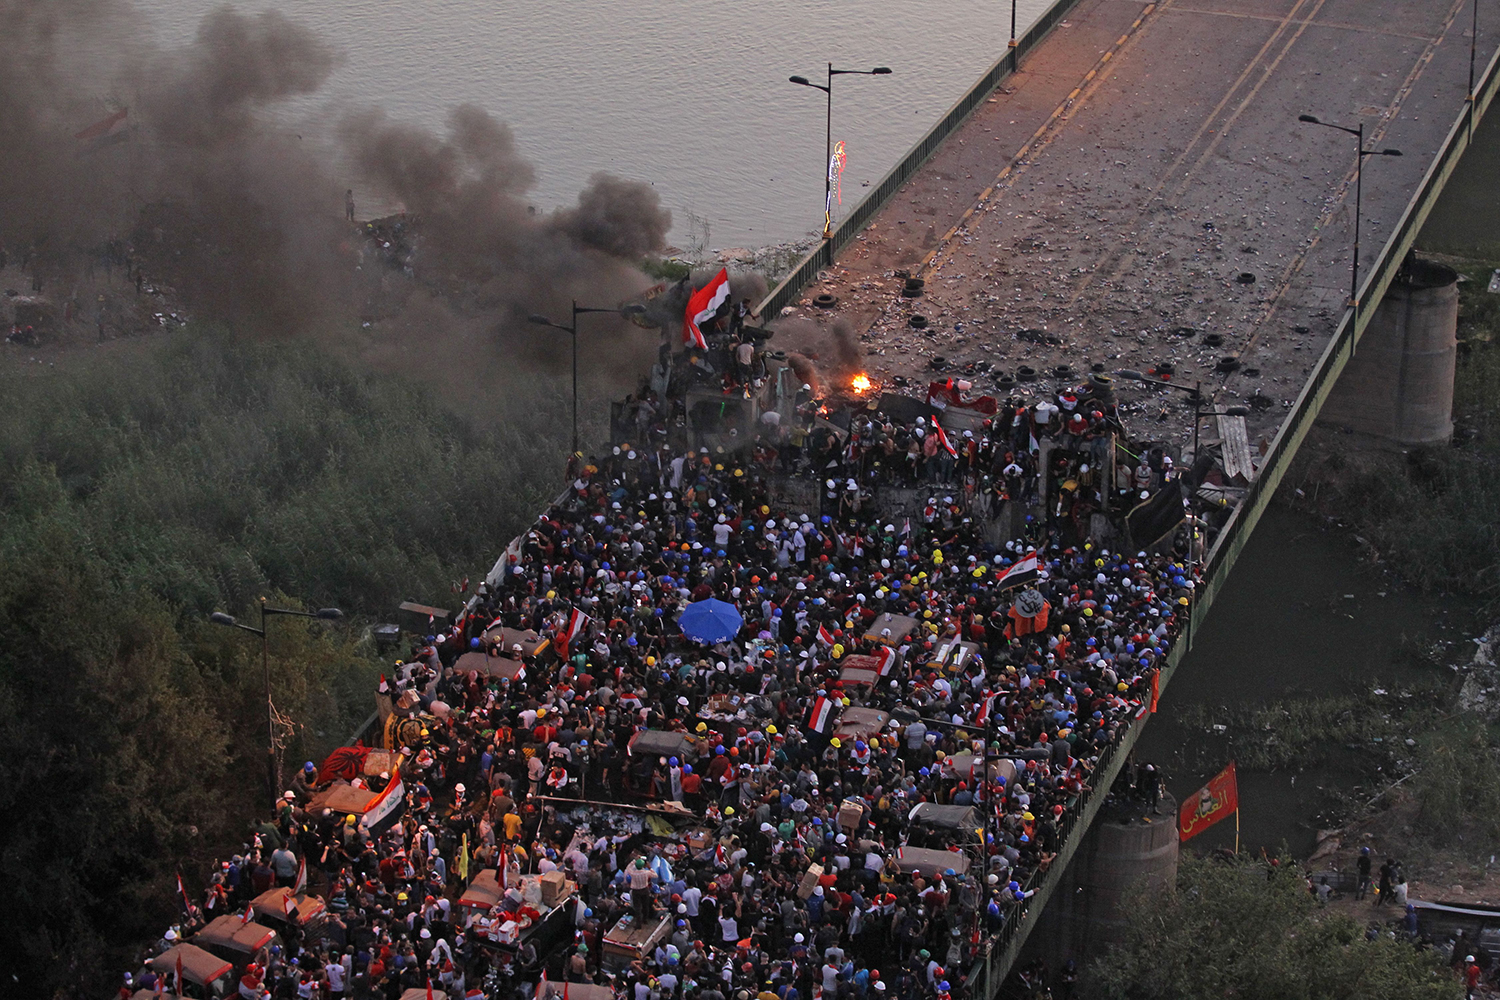 Iraqi protesters gather on al-Jumhuriya bridge which leads to the high-security Green Zone, during ongoing anti-government demonstrations in Baghdad on Oct. 31. AHMAD AL-RUBAYE/AFP via Getty Images